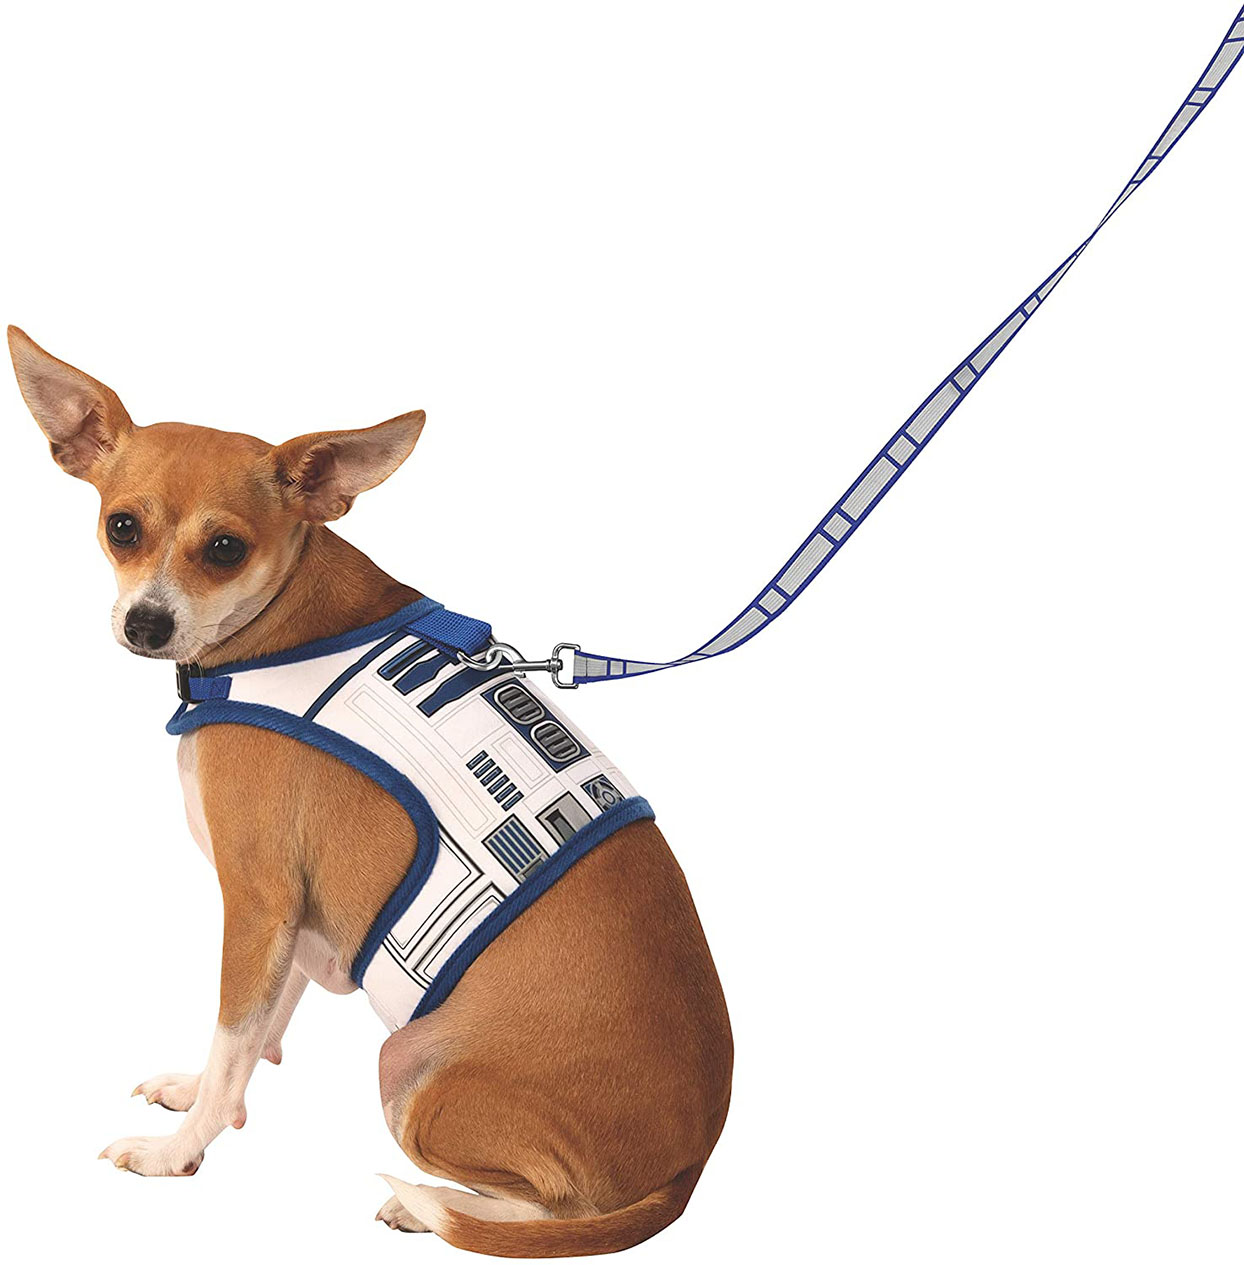 Chihuahua wearing a R2D2 Star Wars dog leash and harness